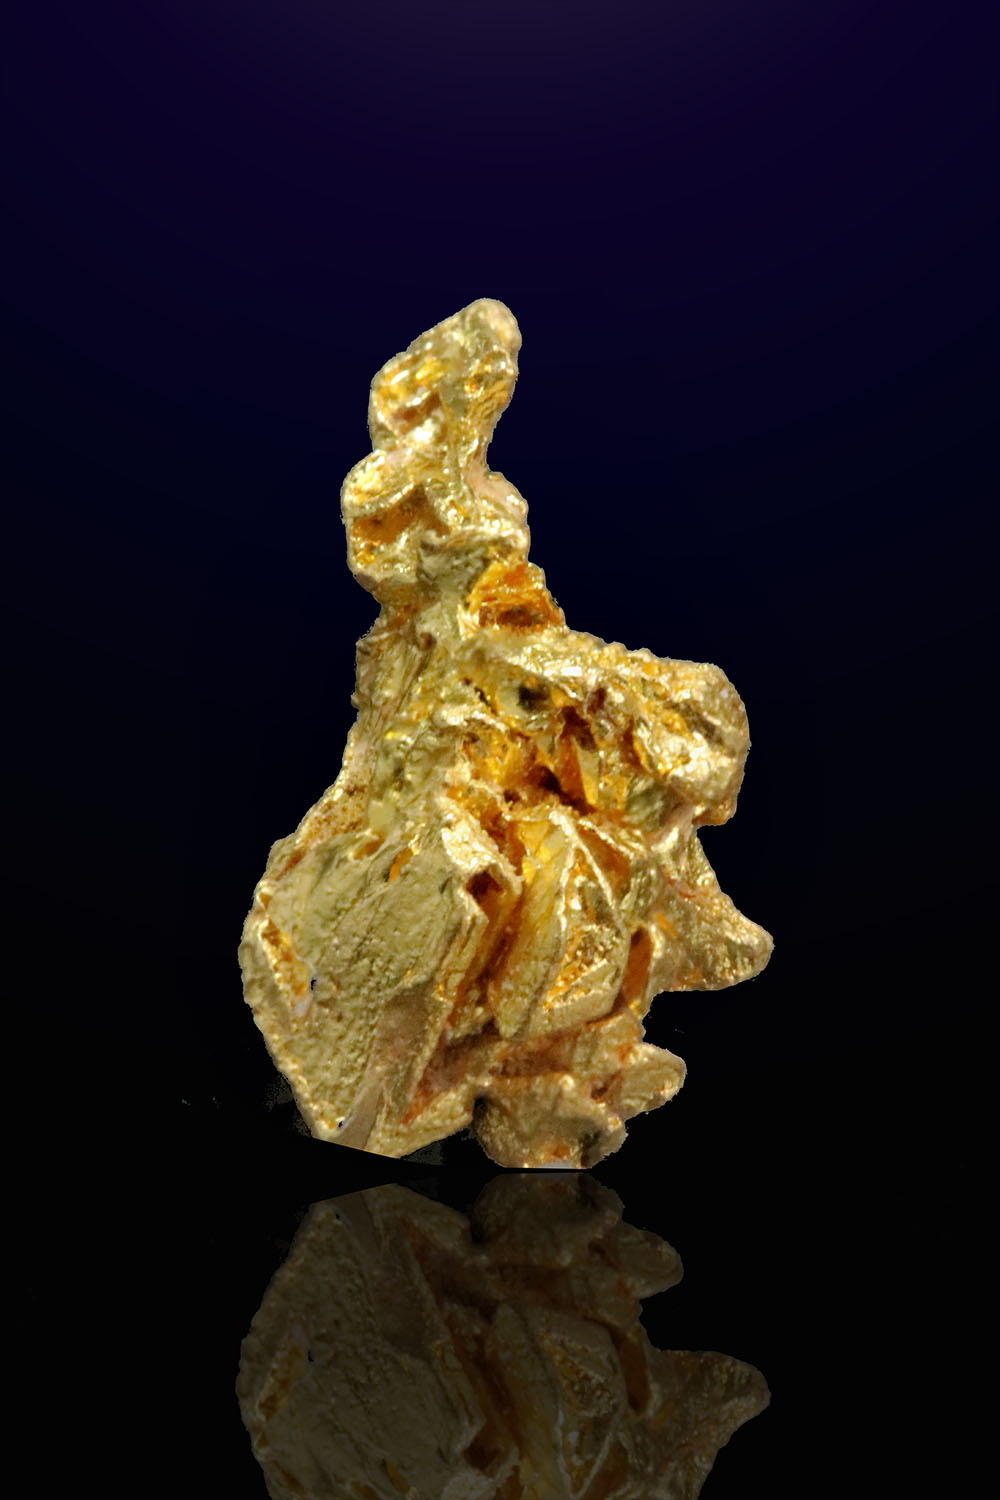 Tappered Gold Crystal - Venezuela